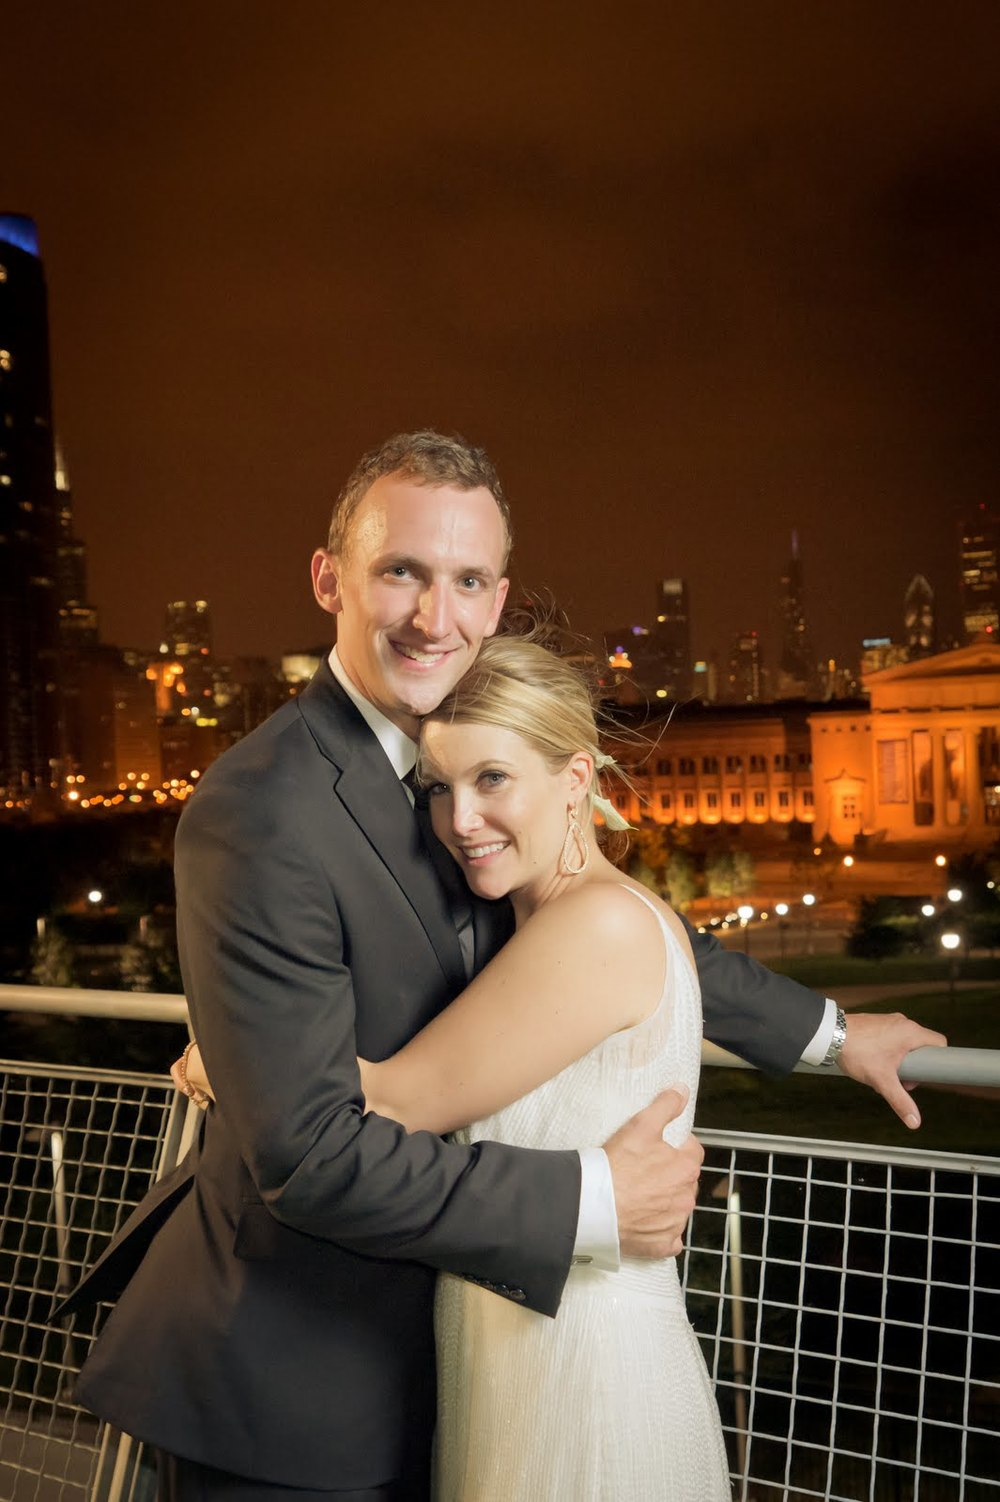 Kurtz_Chicago_Skyline_wedding.jpg